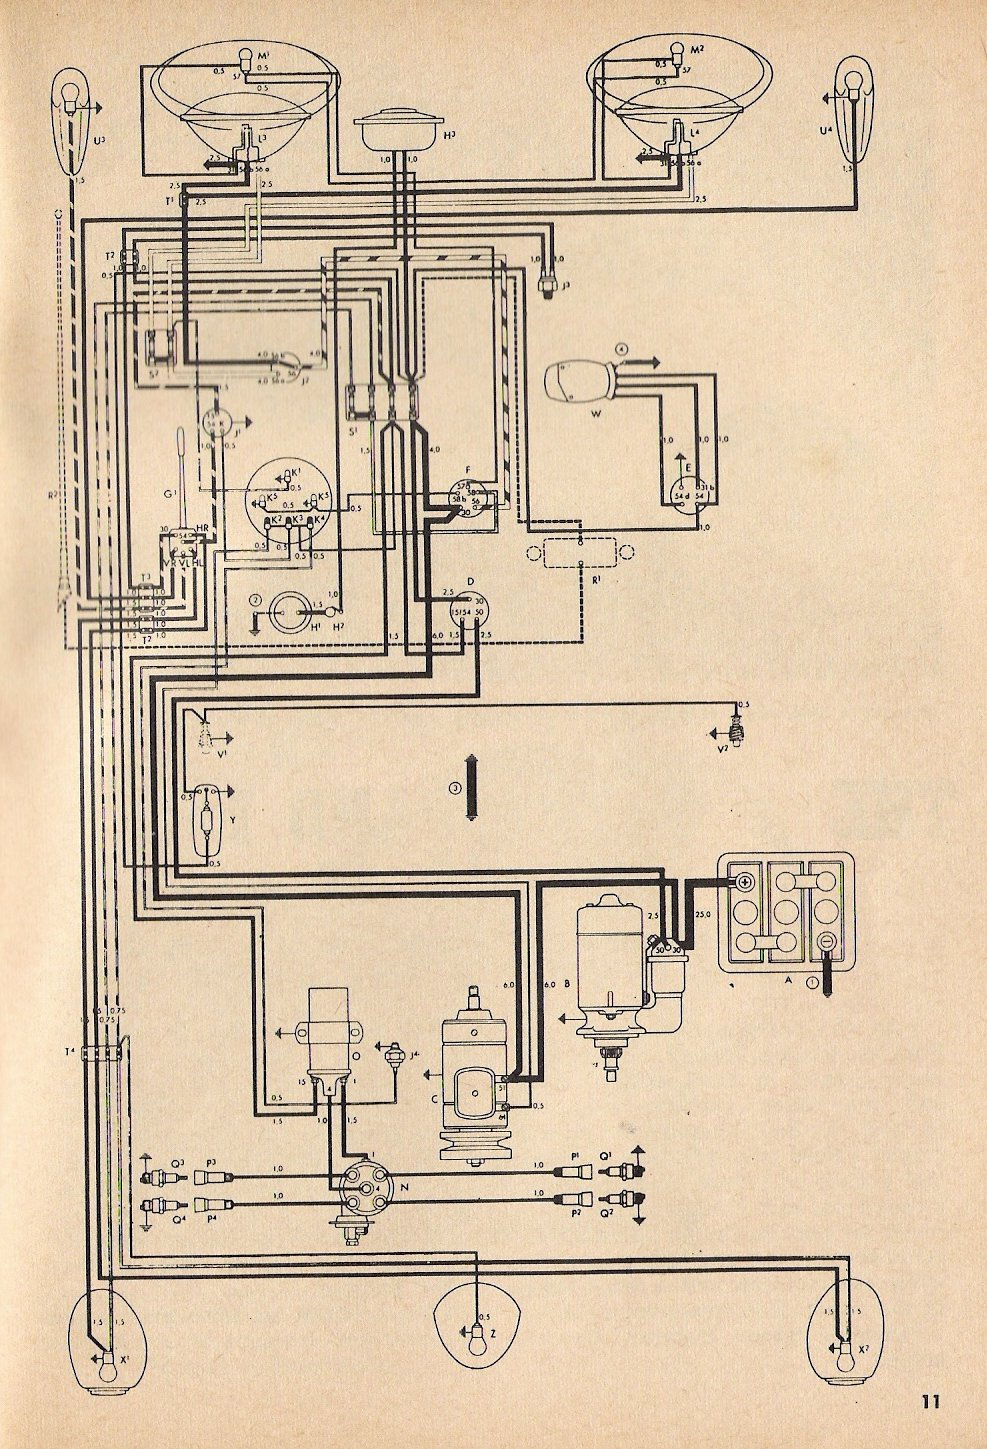 thesamba com type 1 wiring diagrams1963 Vw Wiring Diagram #17